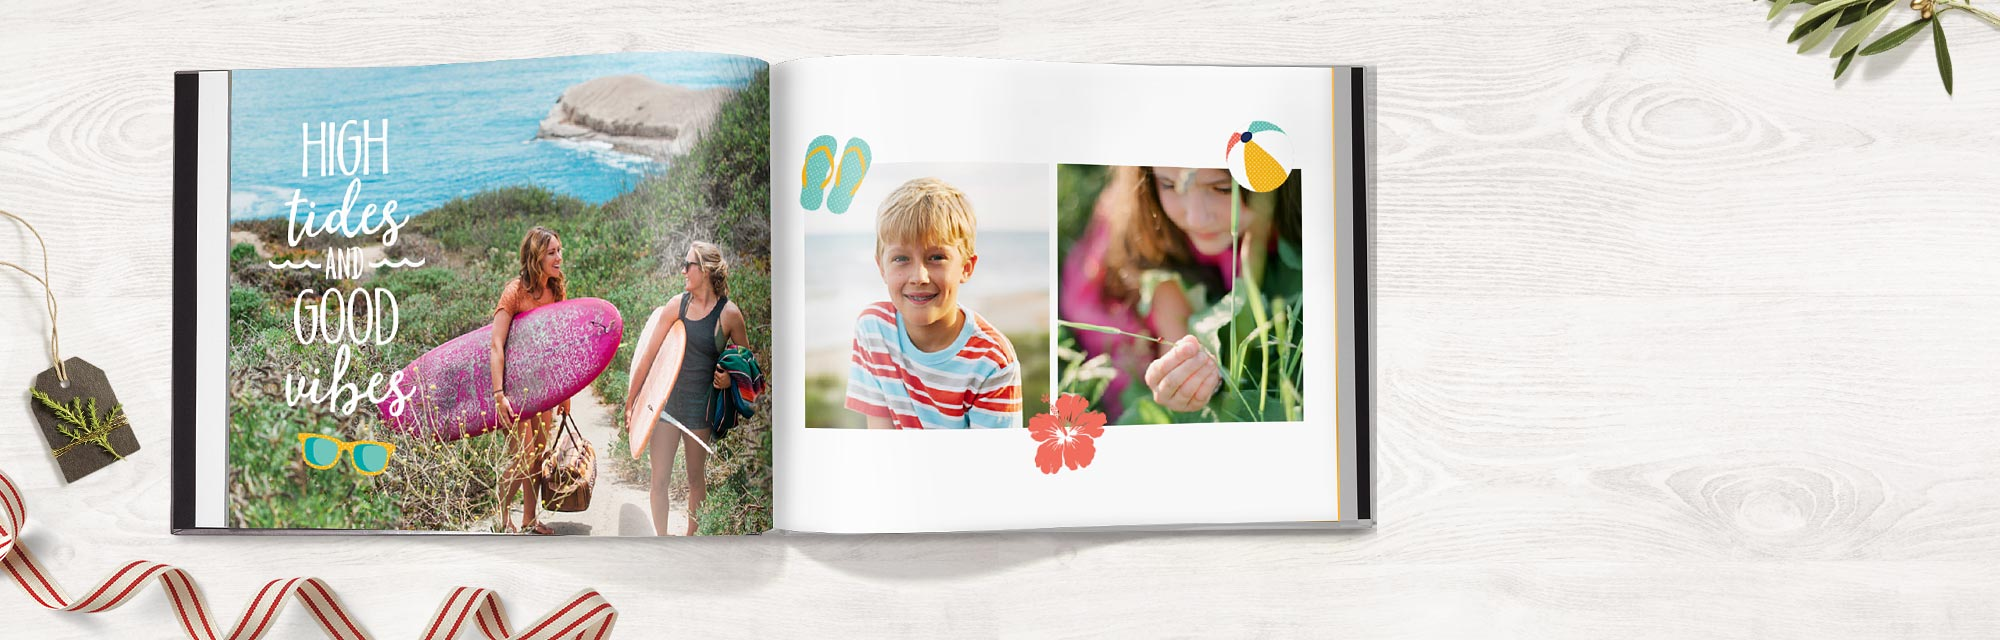 Joyful moments : Use code JOY to get50% off all photo books.*Excludes additional pagesOffer ends 10/12View Terms & Conditions